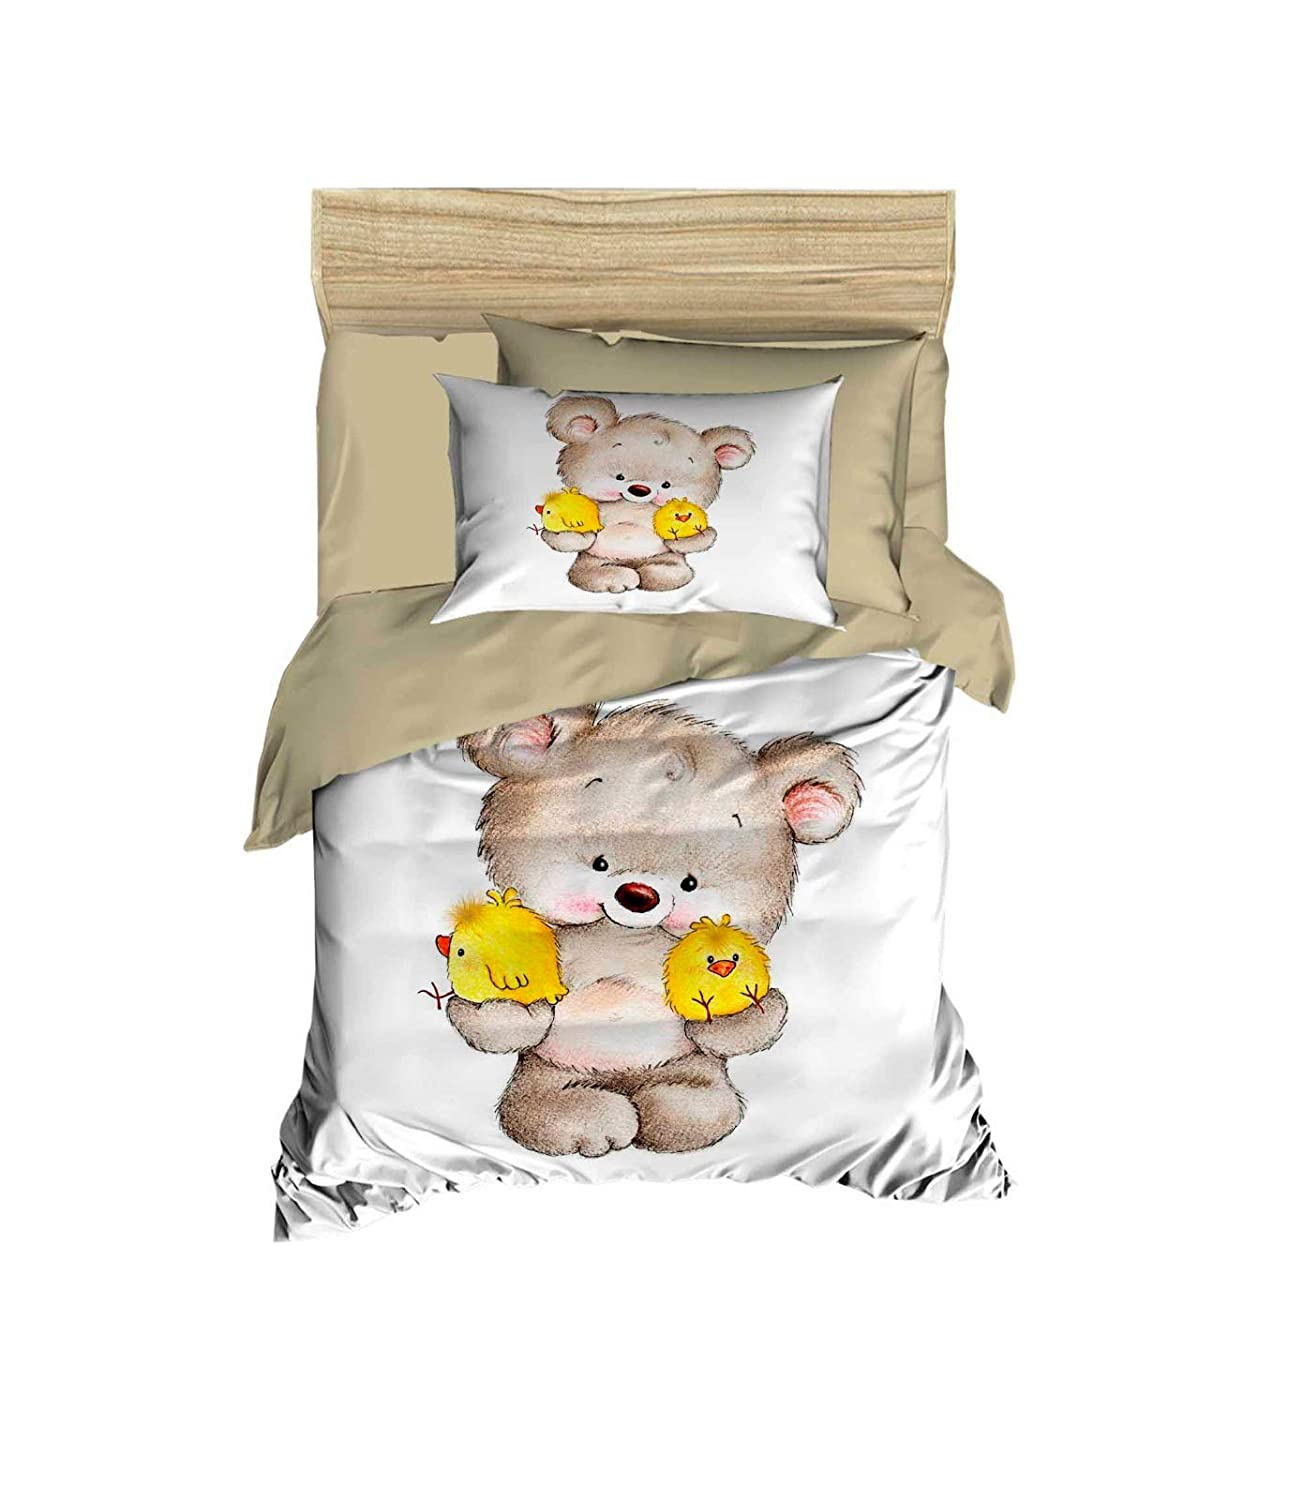 100% Cotton Teddy Bear und Chicks Themed Nursery Baby Bedding Set, Toddlers Crib Bedding für Baby Boys und Girls, Duvet Cover Satz mit Comforter, 5 Pieces